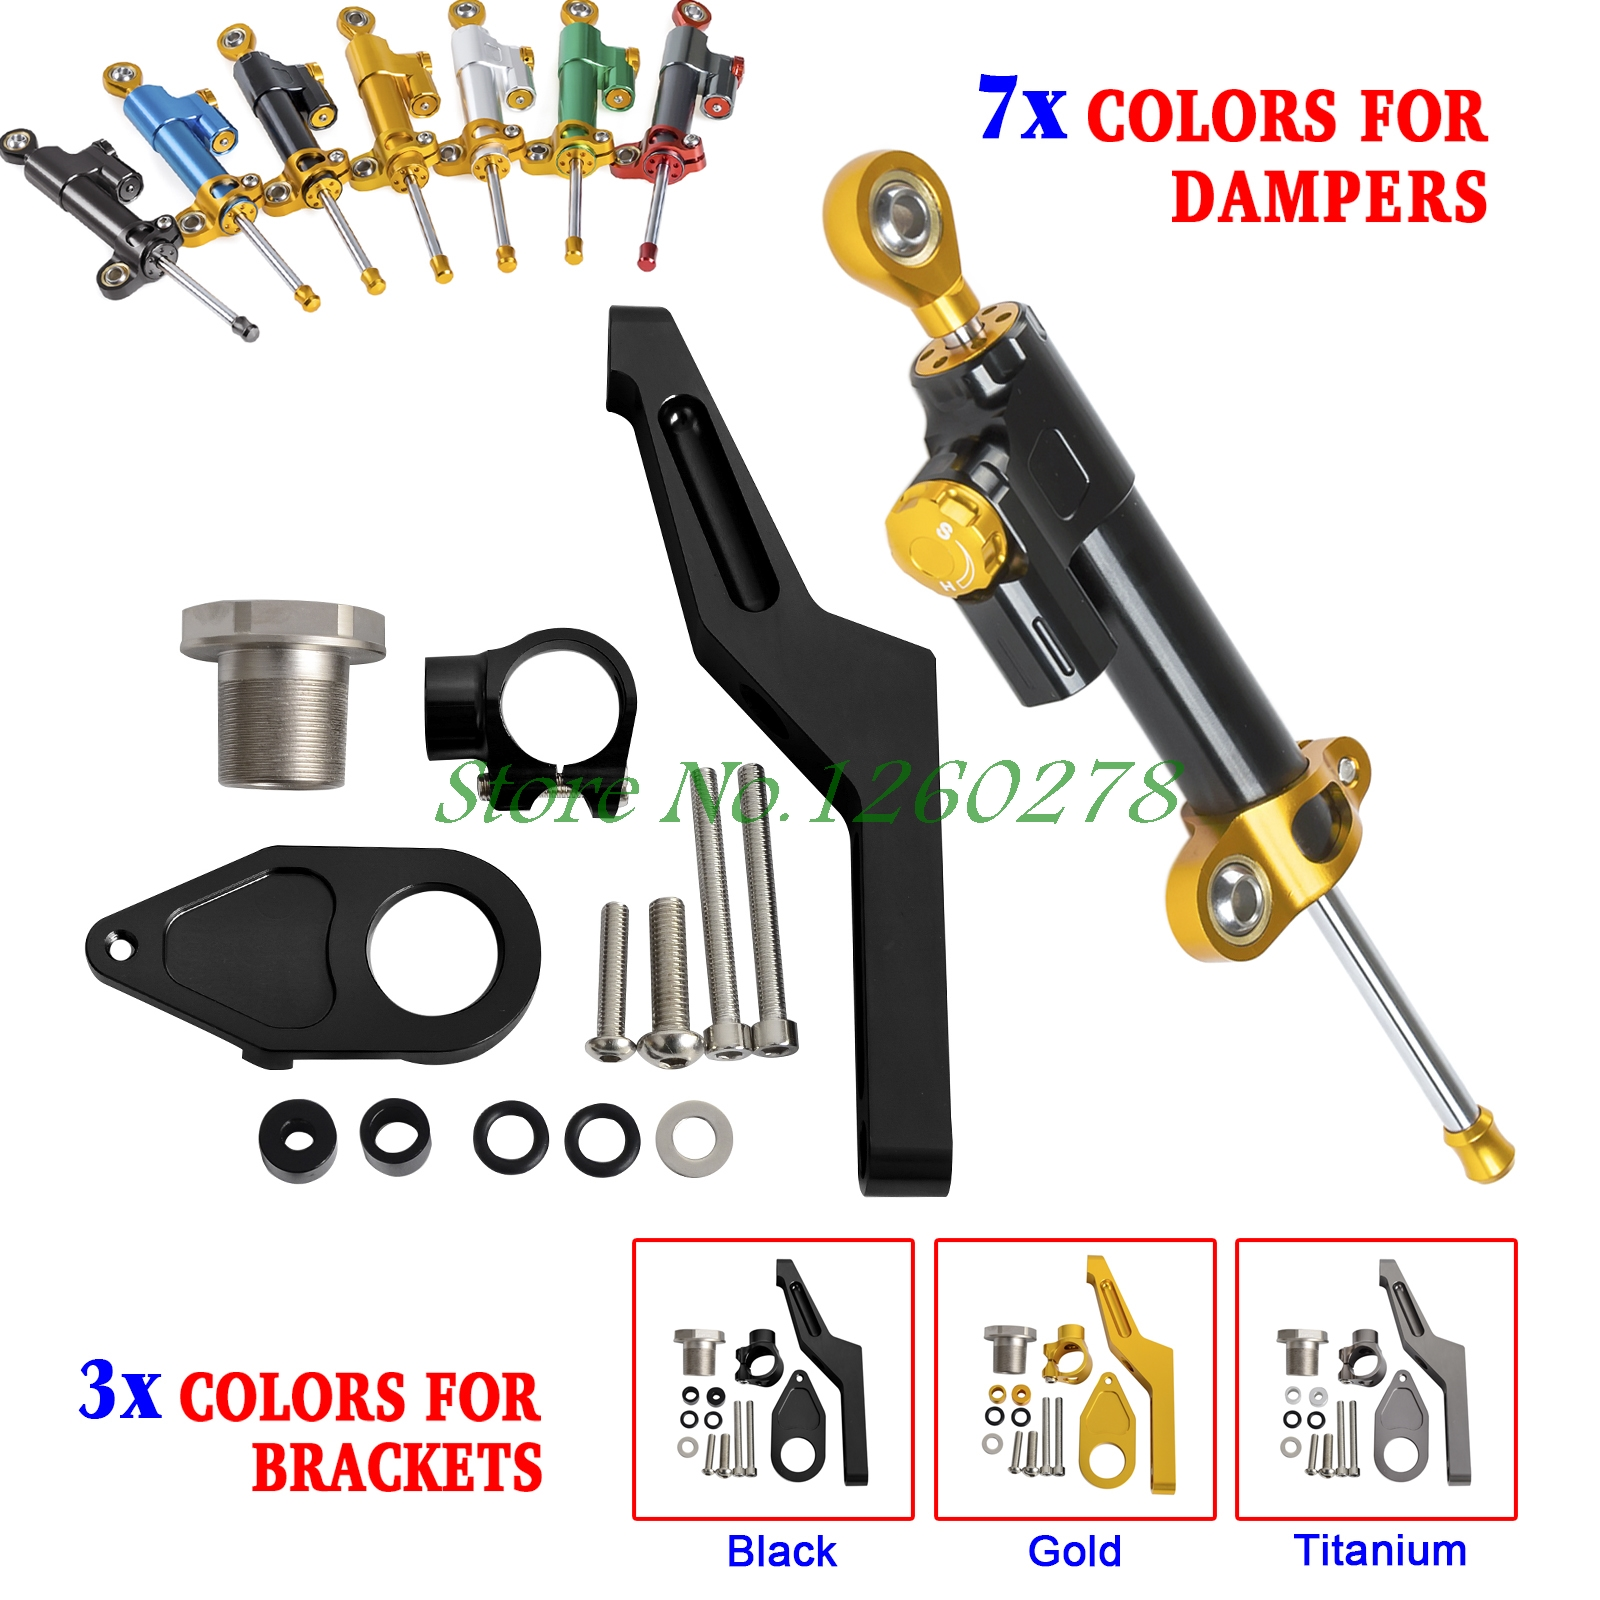 Motorcycle CNC Steering Damper Stabilizer & Bracket For Kawasaki Ninja ZX-6R/ABS ZX636 2013 2014 2015 2016 for ktm 200 duke 2013 2014 390 duke 2014 2015 2016 motorcycle accessories steering damper stabilizer with mounting bracket kit